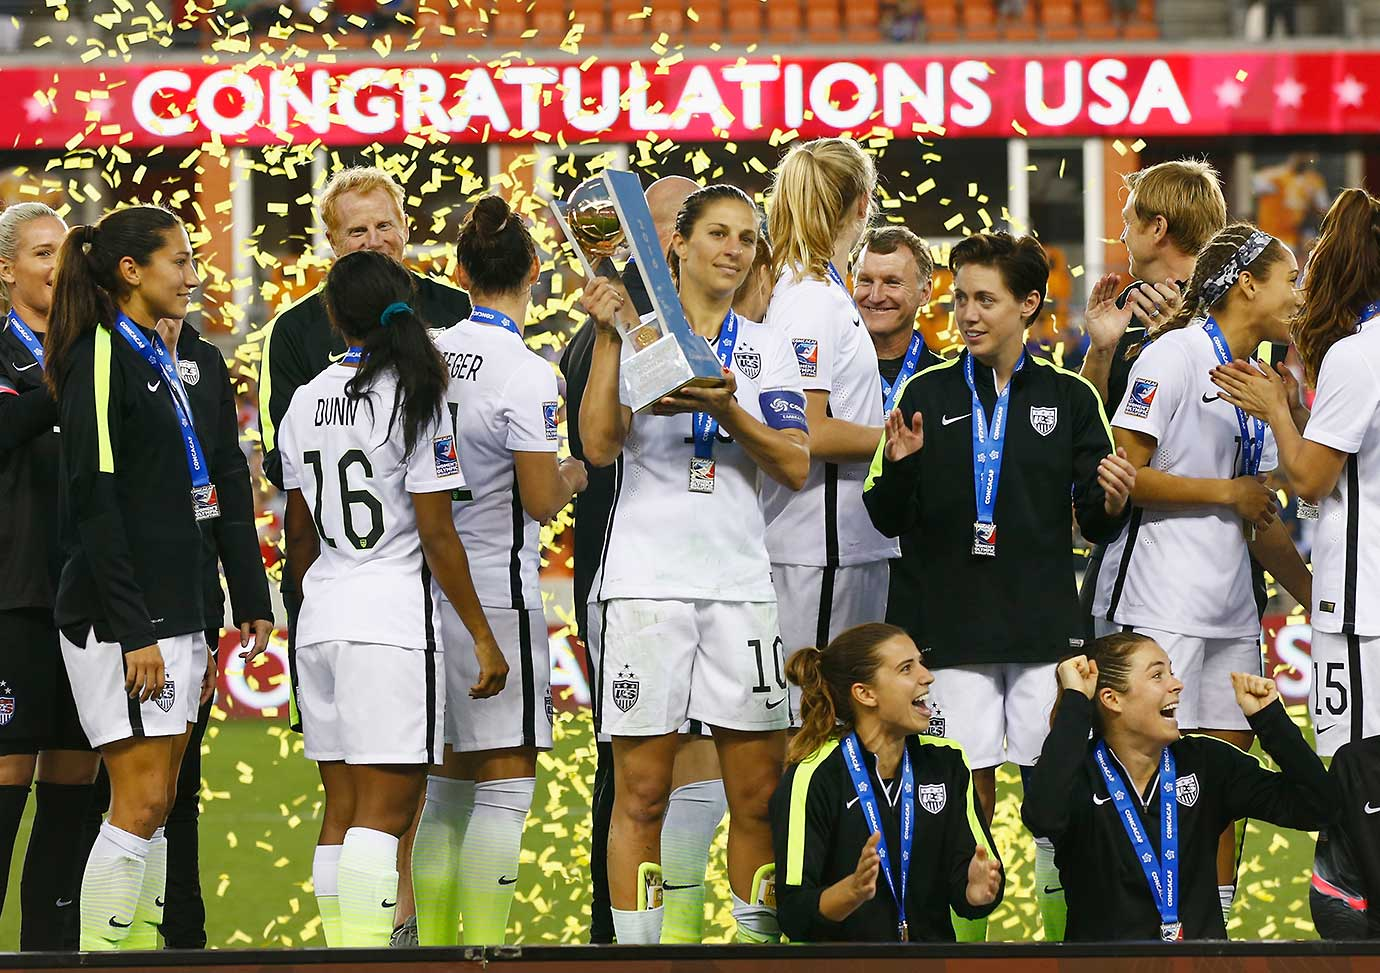 U.S. Captain Carli Lloyd poses on stage with teammates after they beat Canada 2-0.